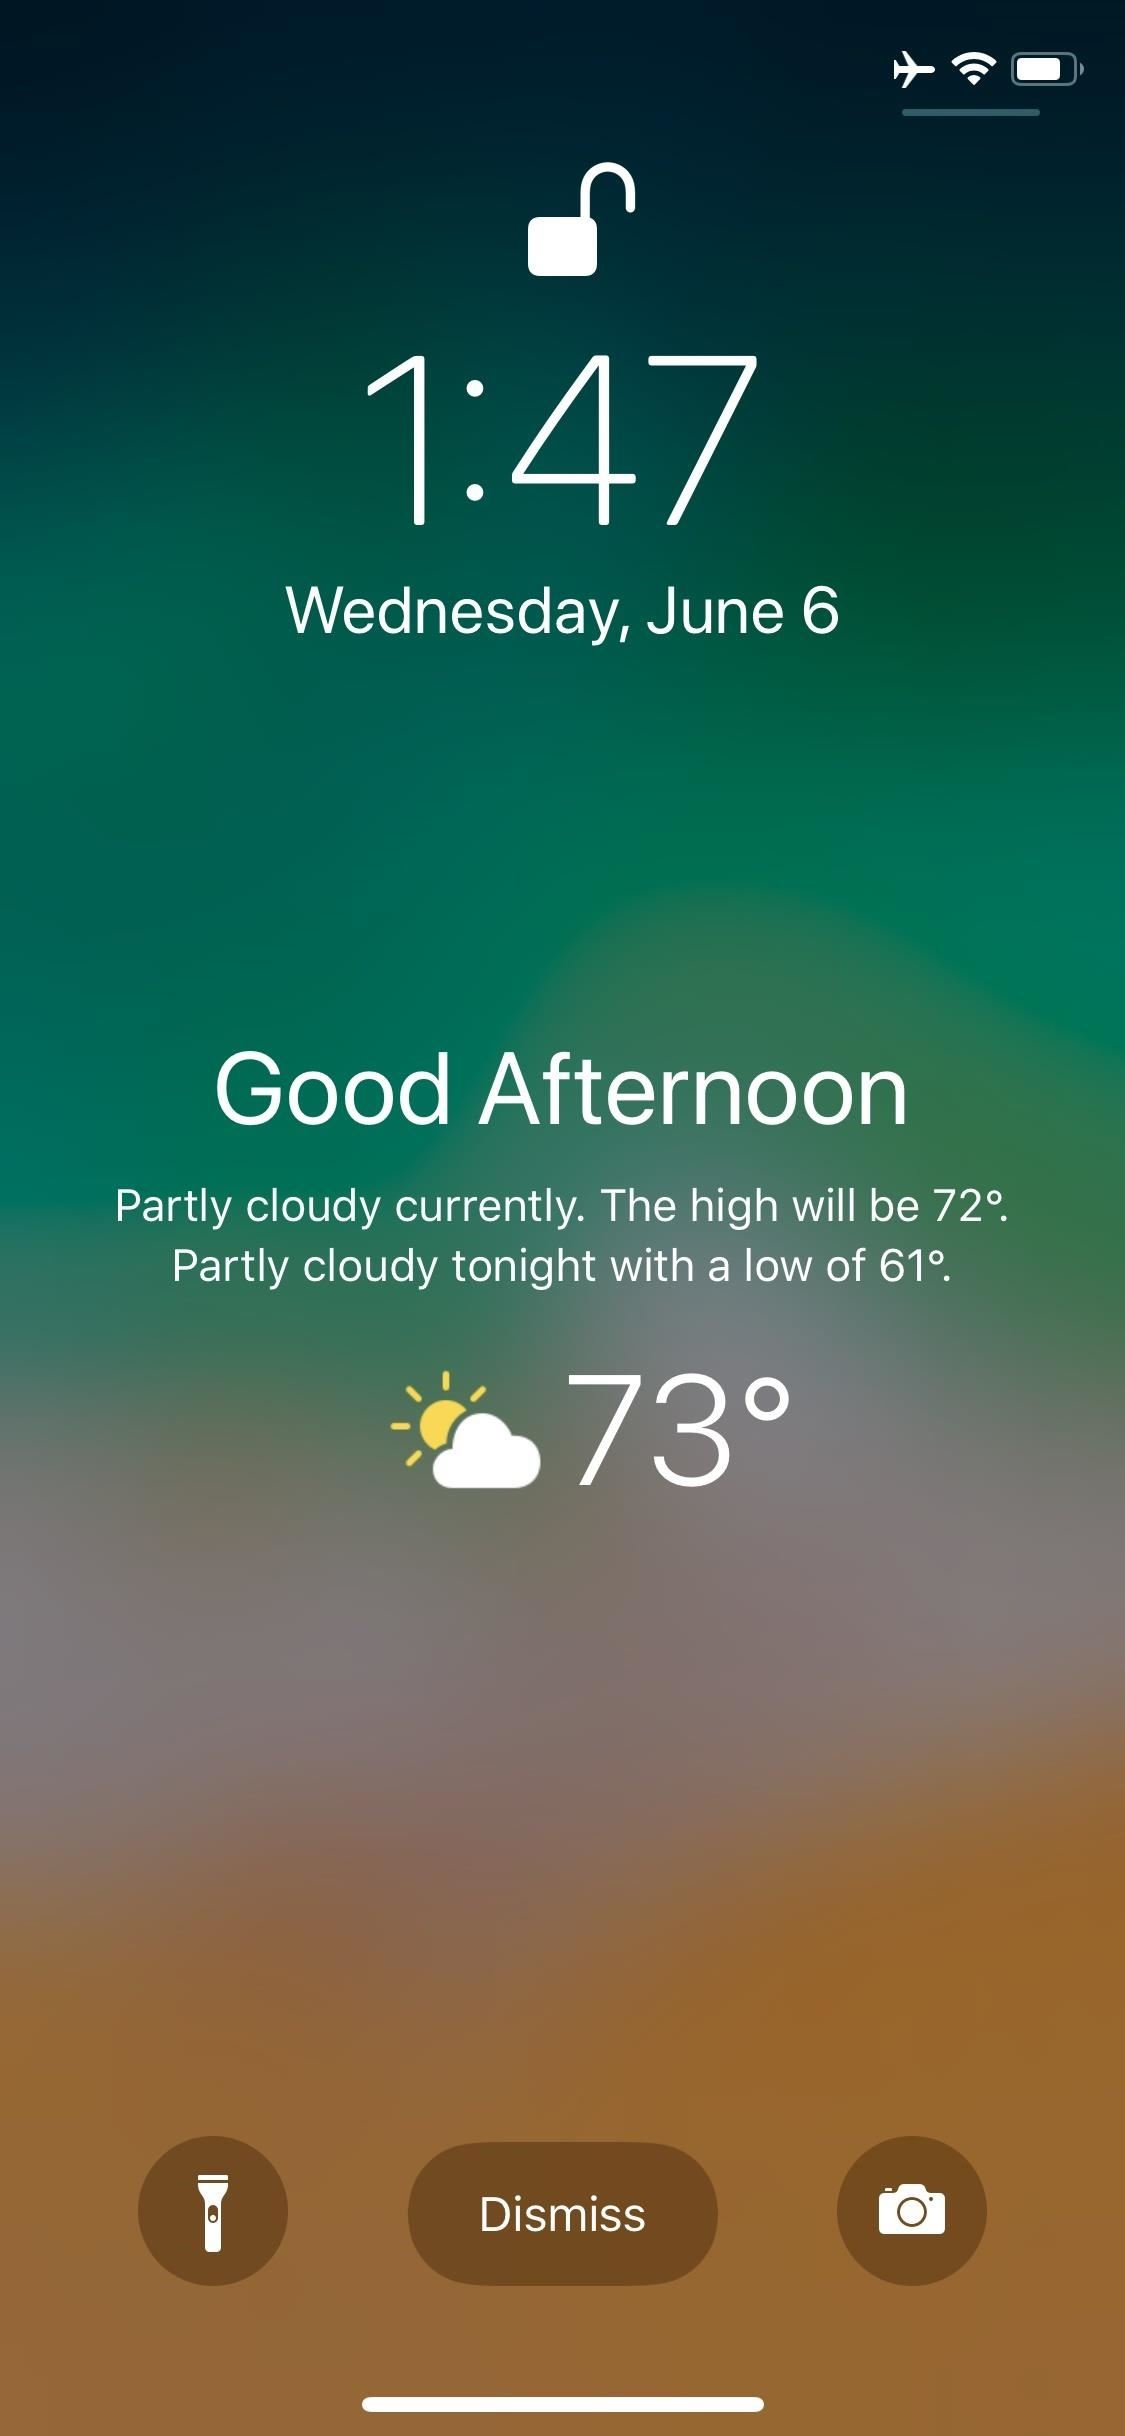 How to unlock the hidden weather lock screen widget in iOS 12 on your iPhone